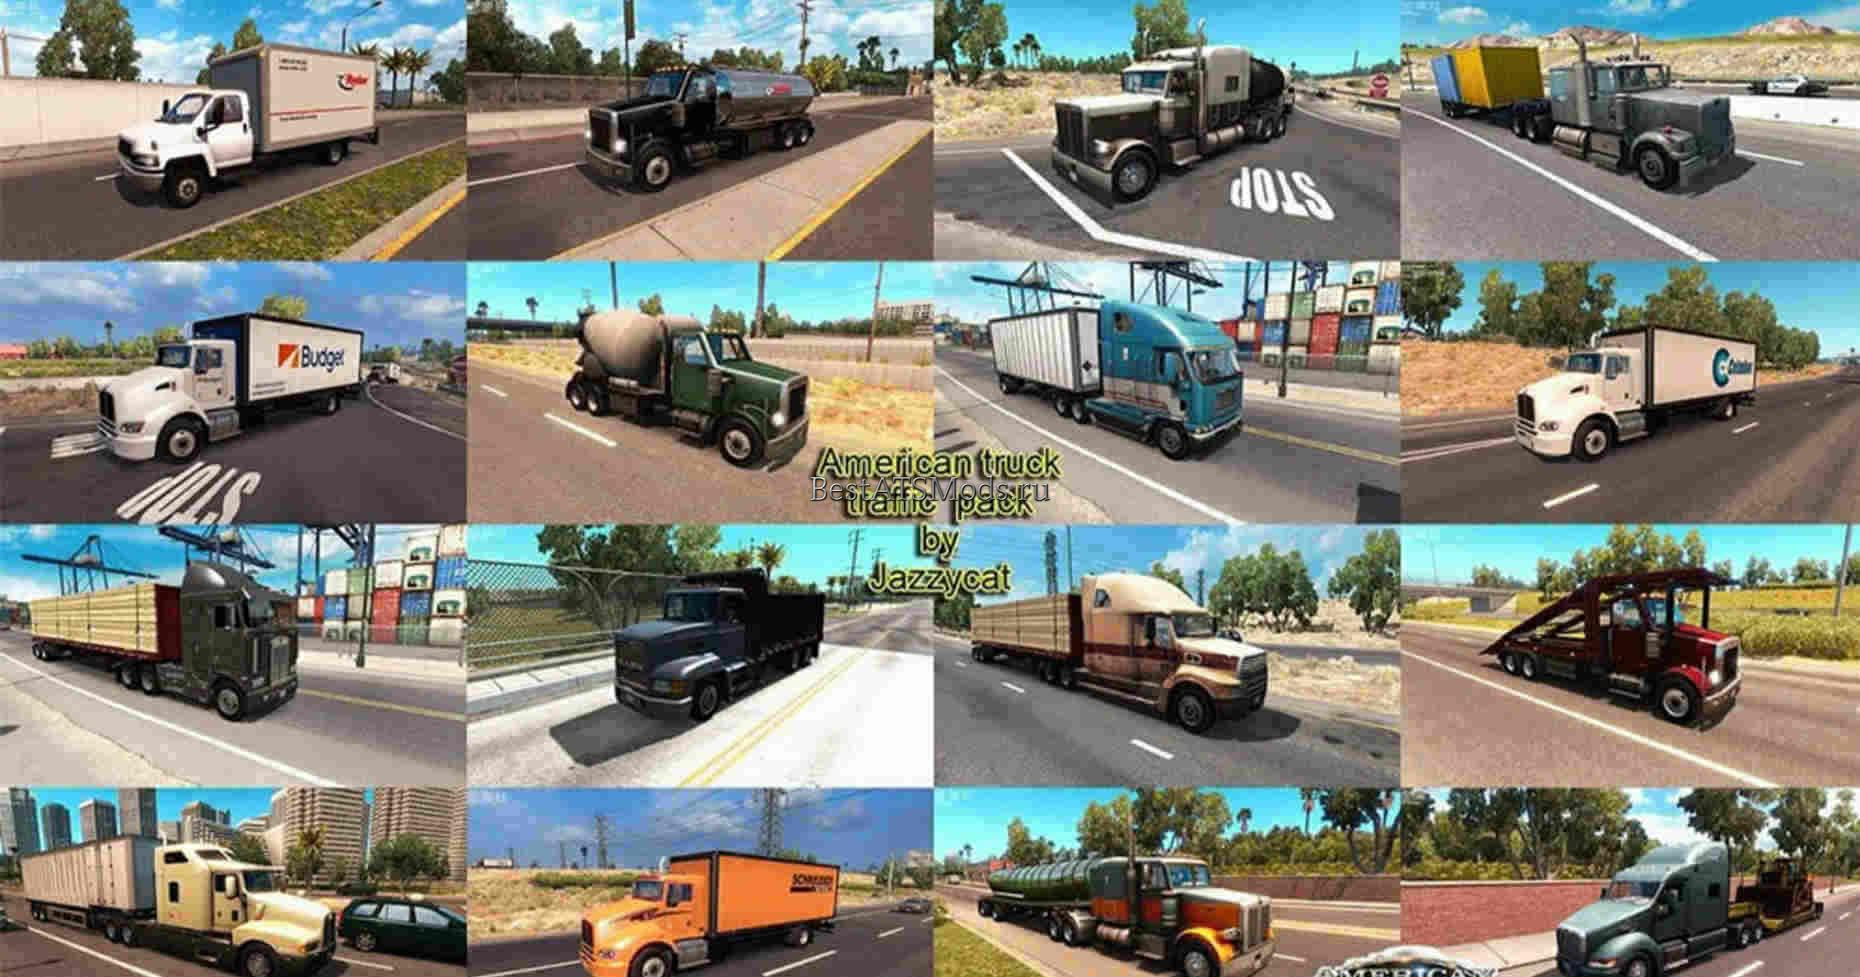 rsz_Мод_трафик_truck_traffic_pack_by_jazzycat_v13_for_american_truck_simulator